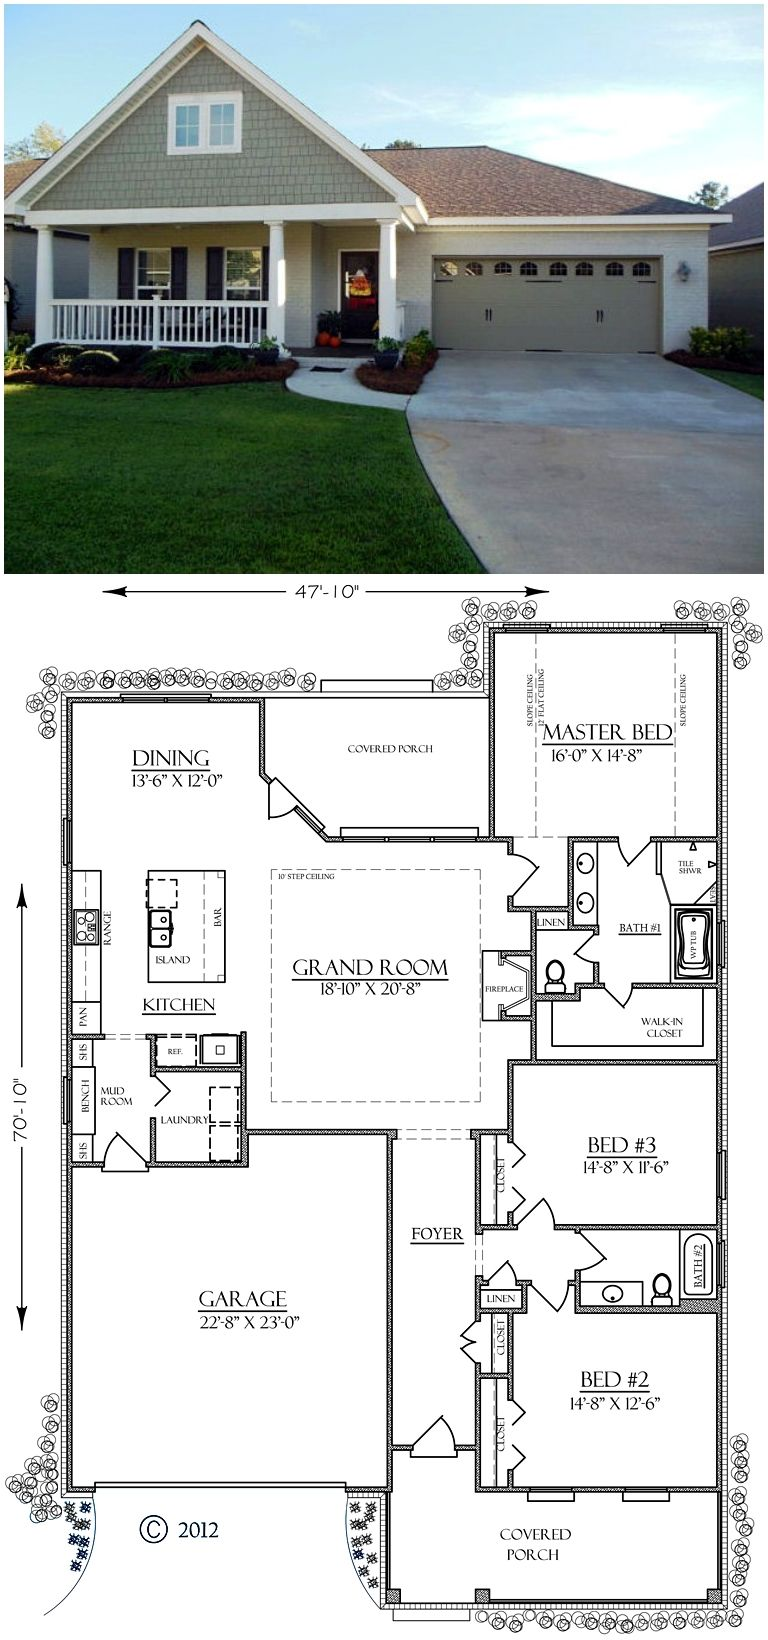 Southern Style House Plan 74755 With 3 Bed 2 Bath 2 Car Garage Craftsman House Plans House Plans House Layouts